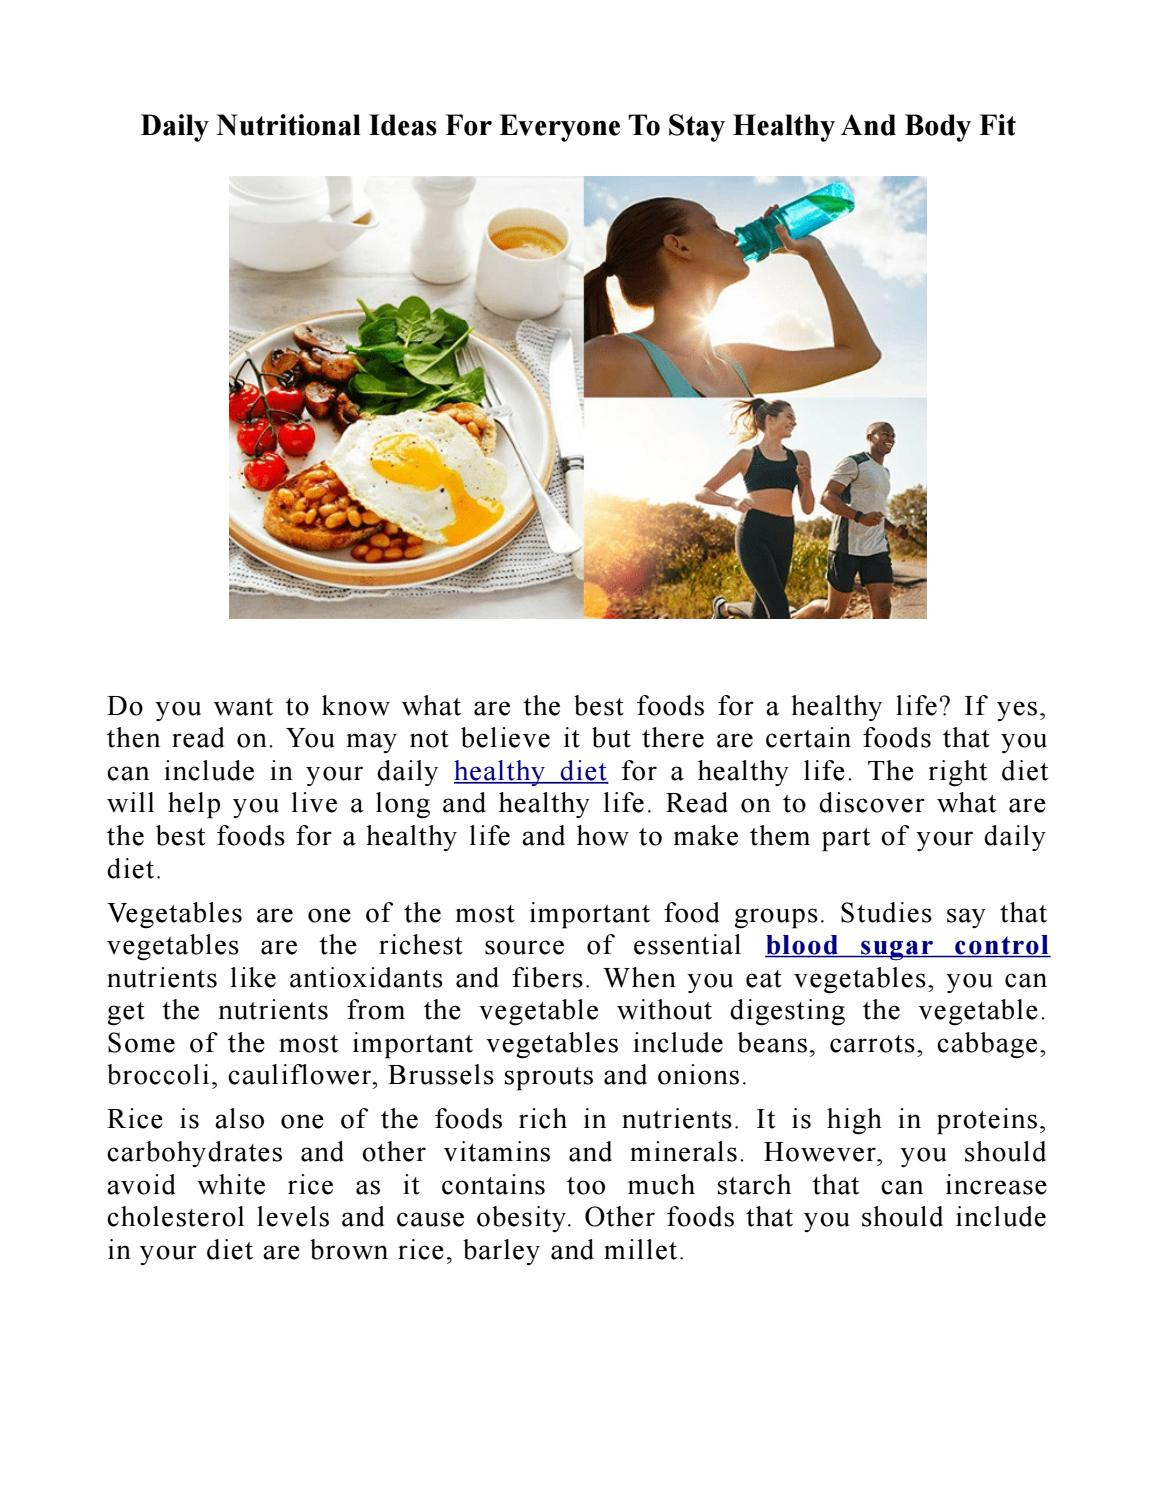 Daily Nutritional Ideas For Everyone To Stay Healthy And Body Fit